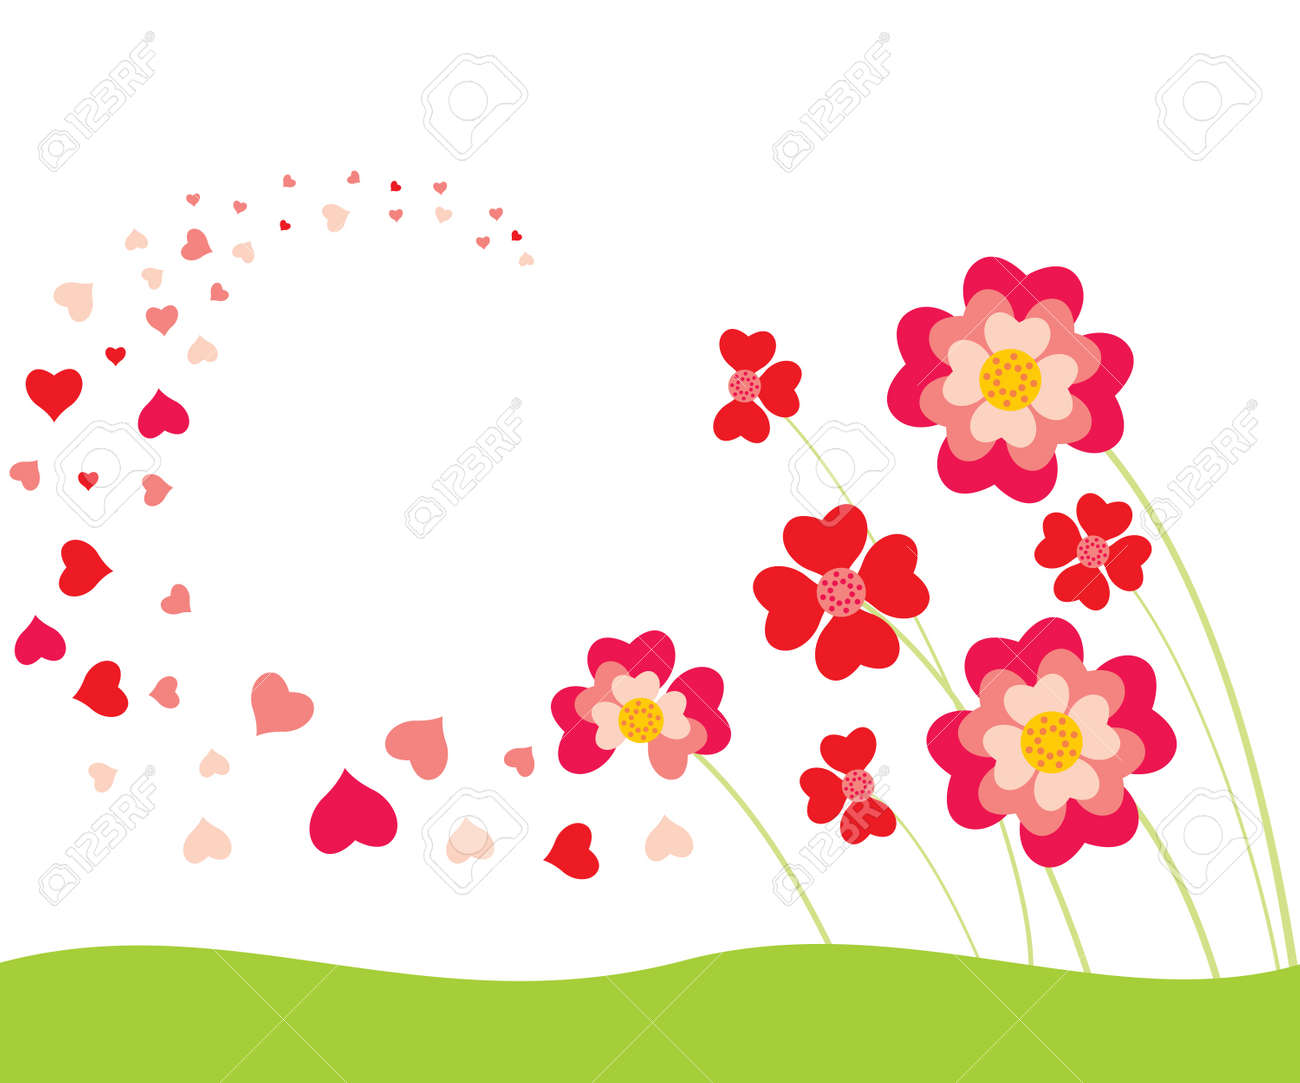 The flower petals in the form of hearts flutter in the air Stock Vector - 11373313